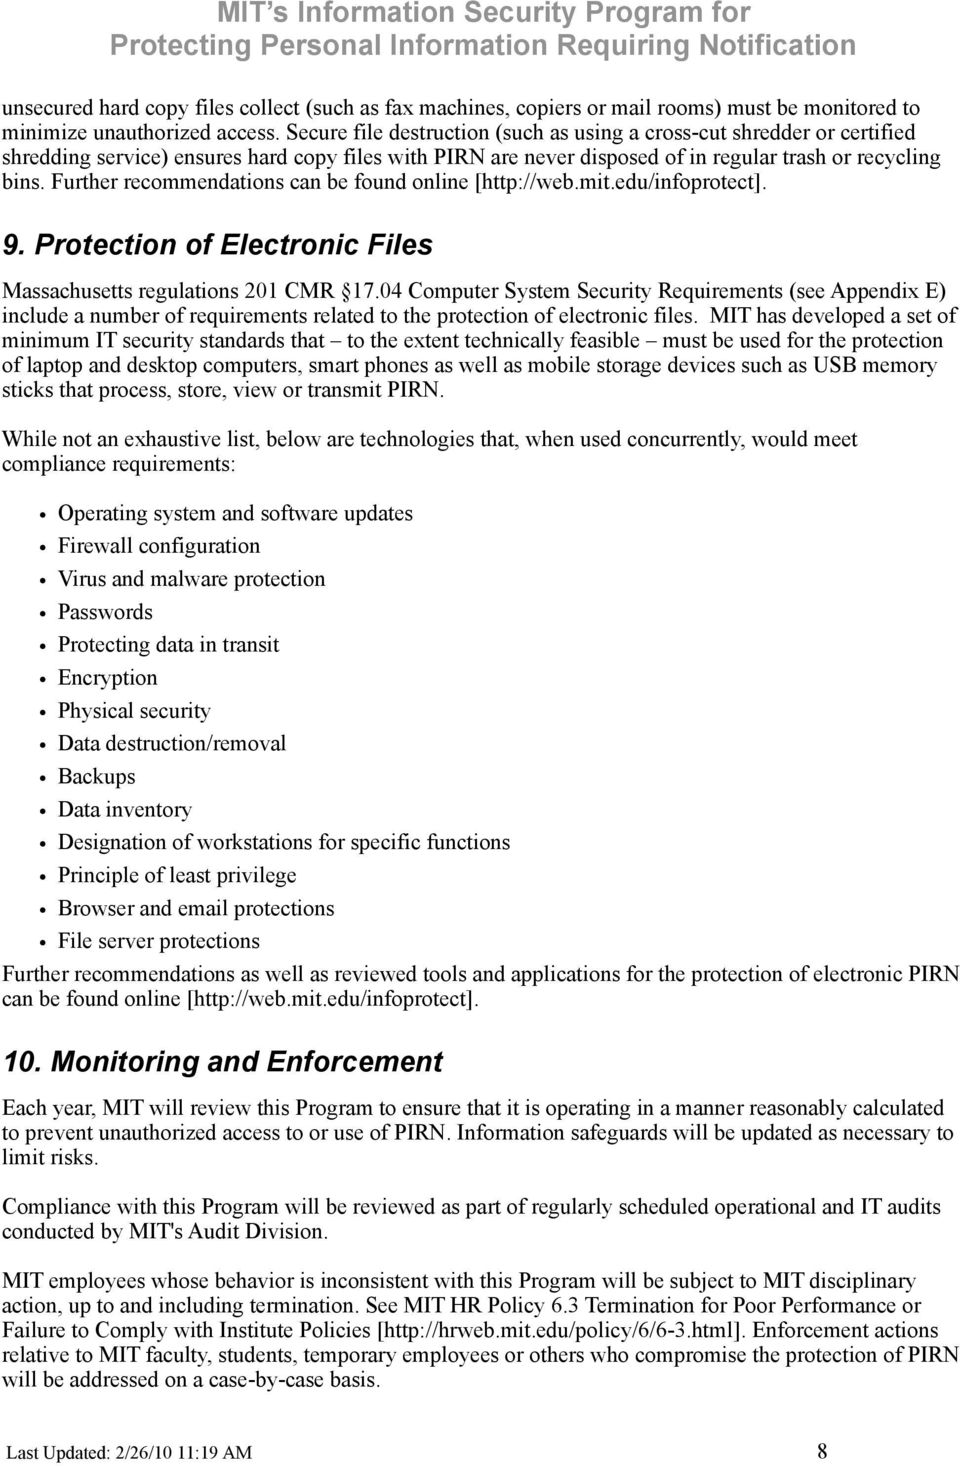 Further recommendations can be found online [http://web.mit.edu/infoprotect]. 9. Protection of Electronic Files Massachusetts regulations 201 CMR 17.